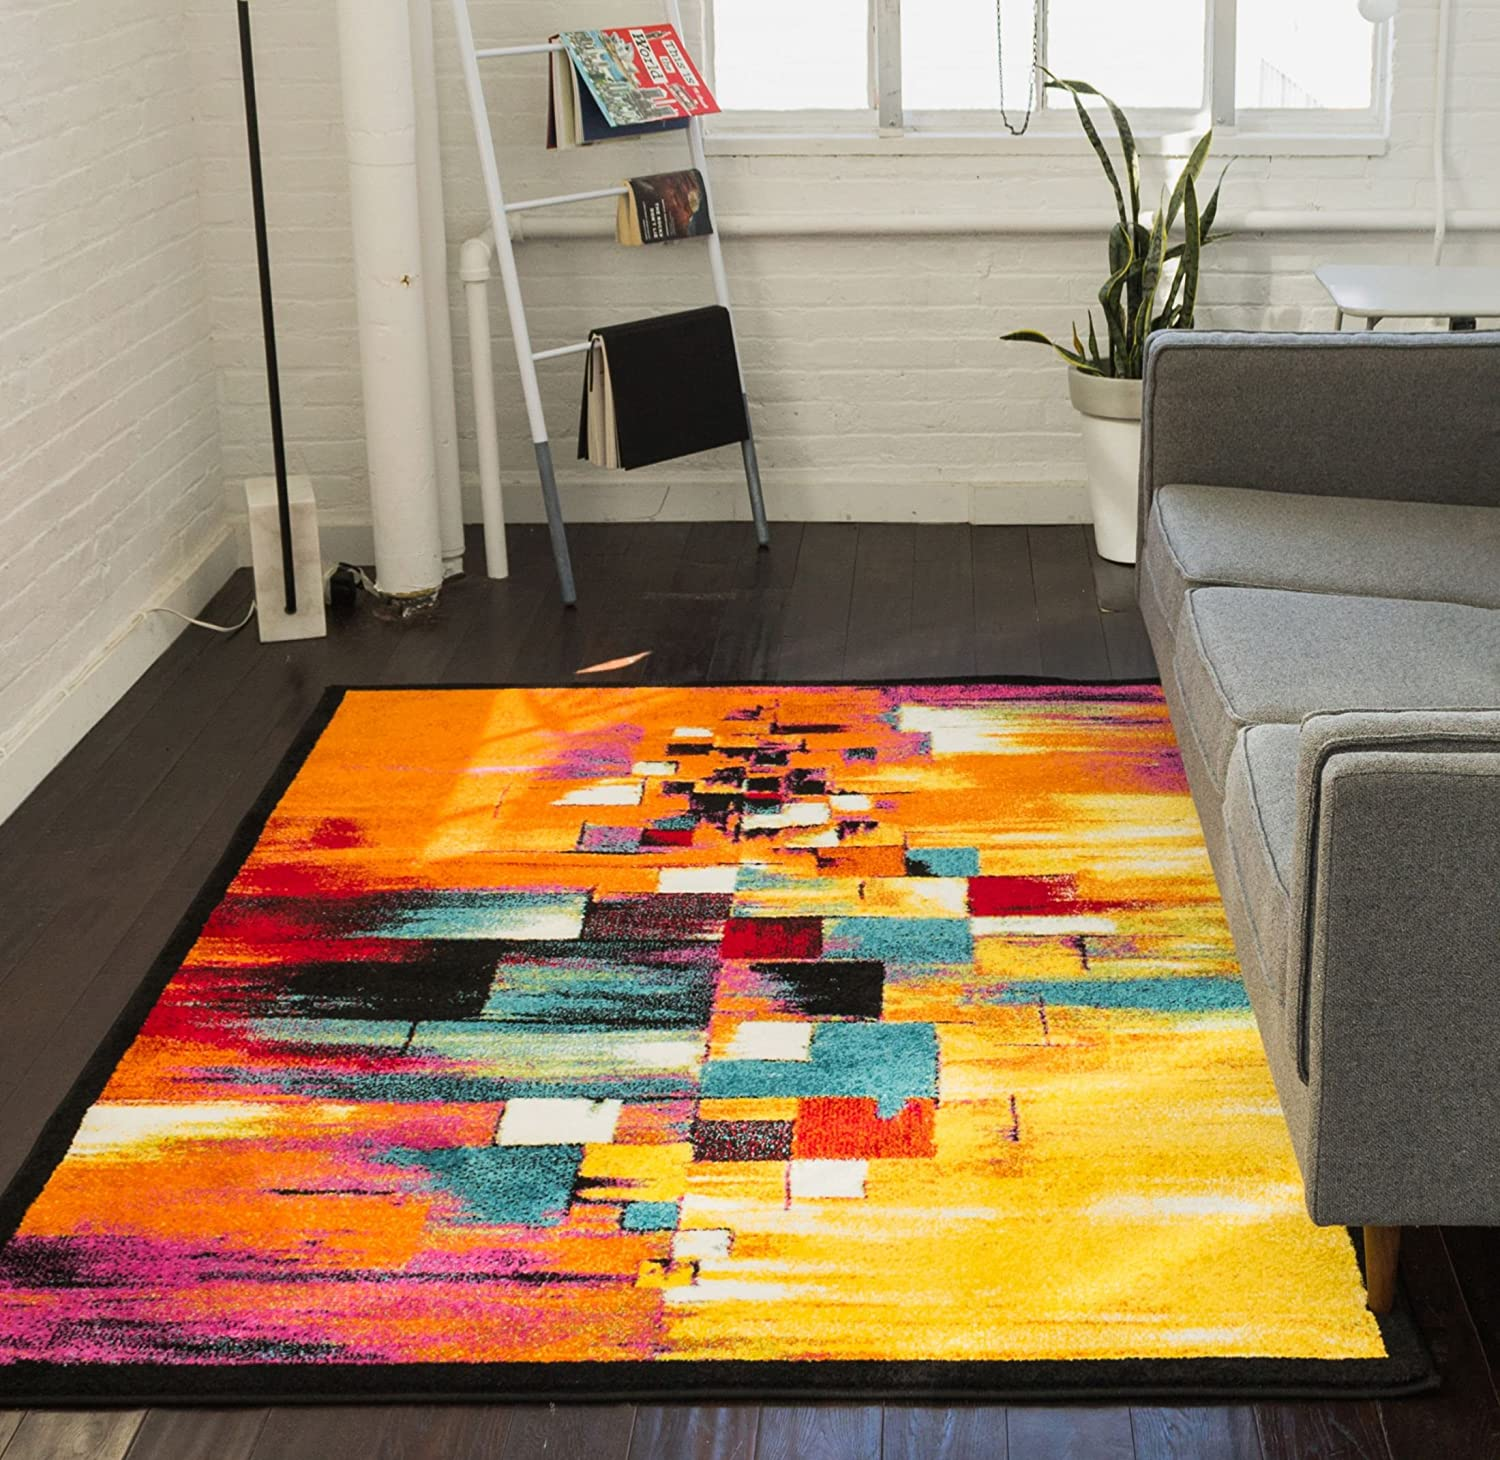 Artistic Carpet As A Unique And Colorful Gift